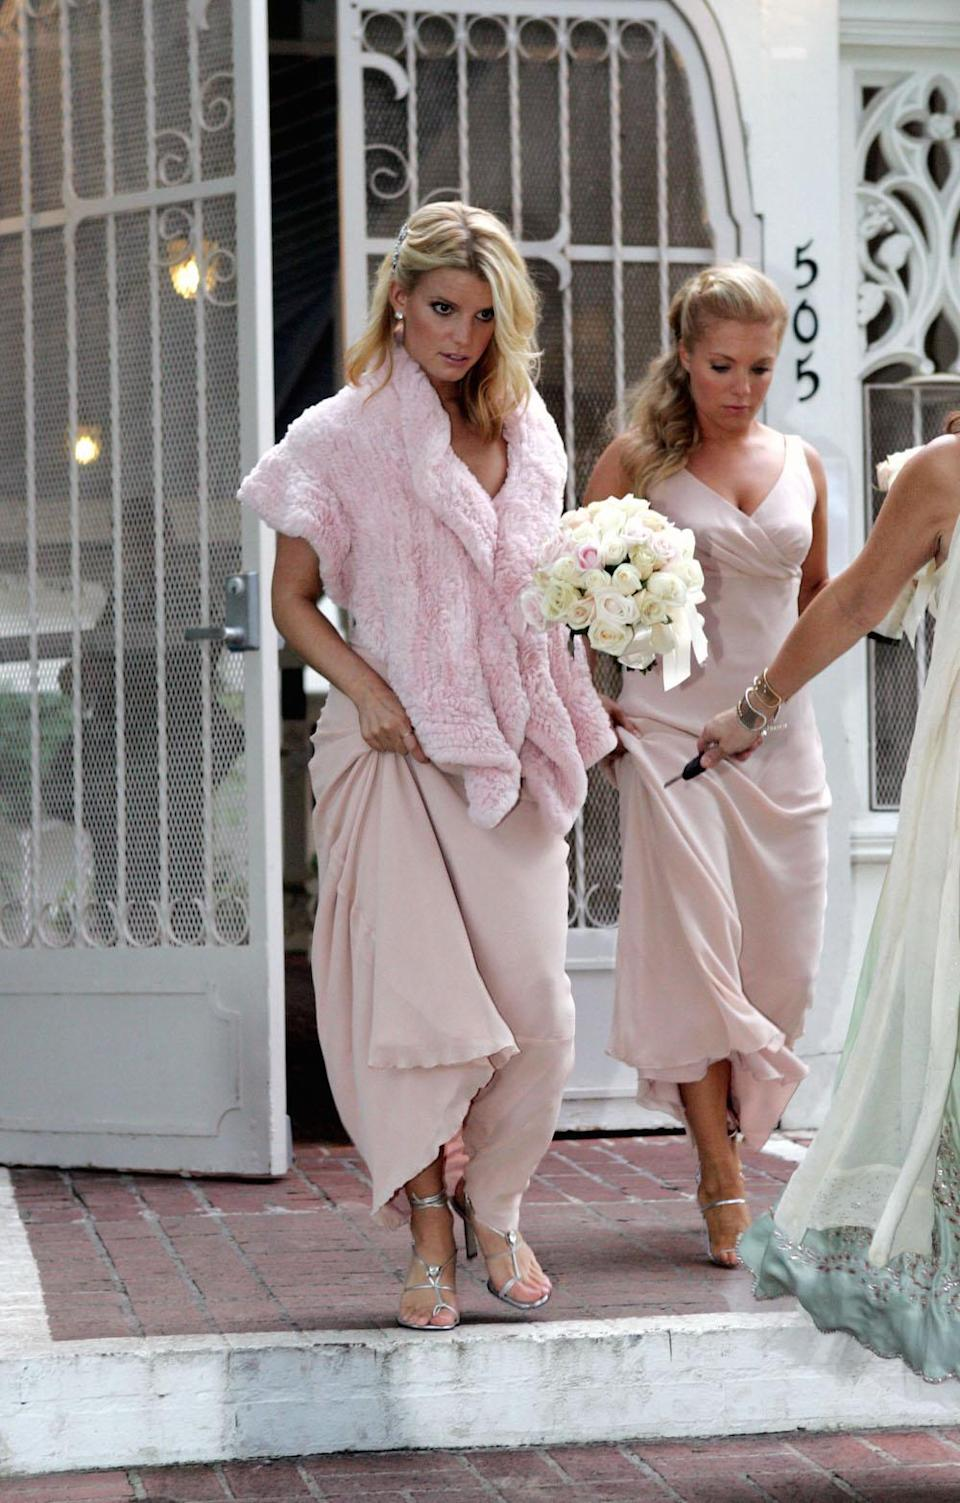 """<p><a rel=""""nofollow noopener"""" href=""""http://www.eonline.com/photos/9043/celebrity-bridesmaids/490865"""" target=""""_blank"""" data-ylk=""""slk:According to"""" class=""""link rapid-noclick-resp"""">According to </a><i>EOnline</i>, the celebrity designer and songstress has been a bridesmaid at least six times! Here she is looking pretty in pale pink. <i>(Splash News)</i></p>"""